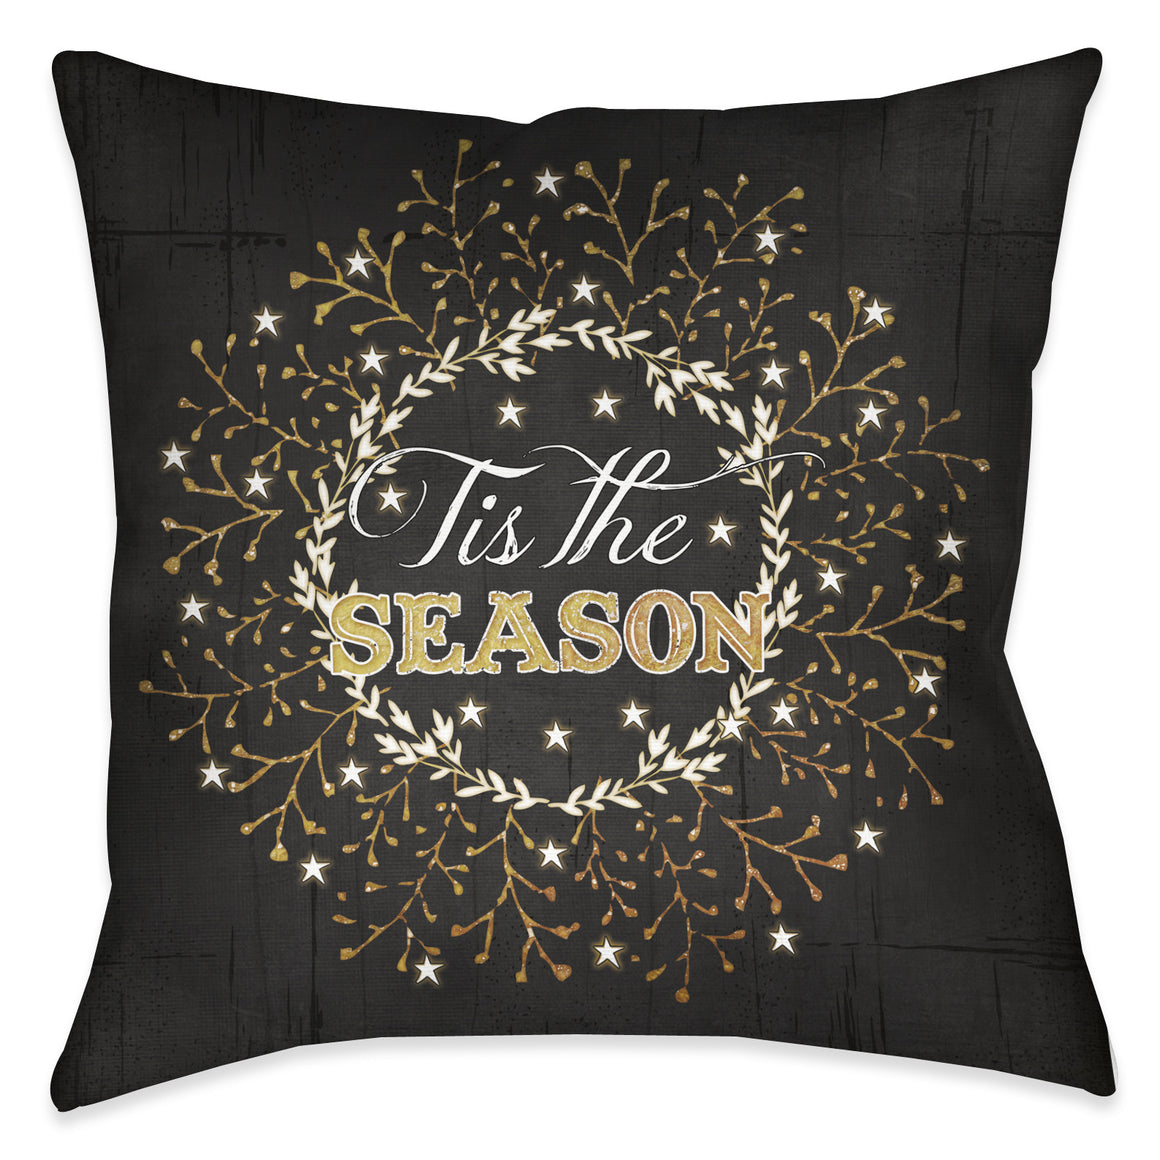 Tis the Season Indoor Pillow